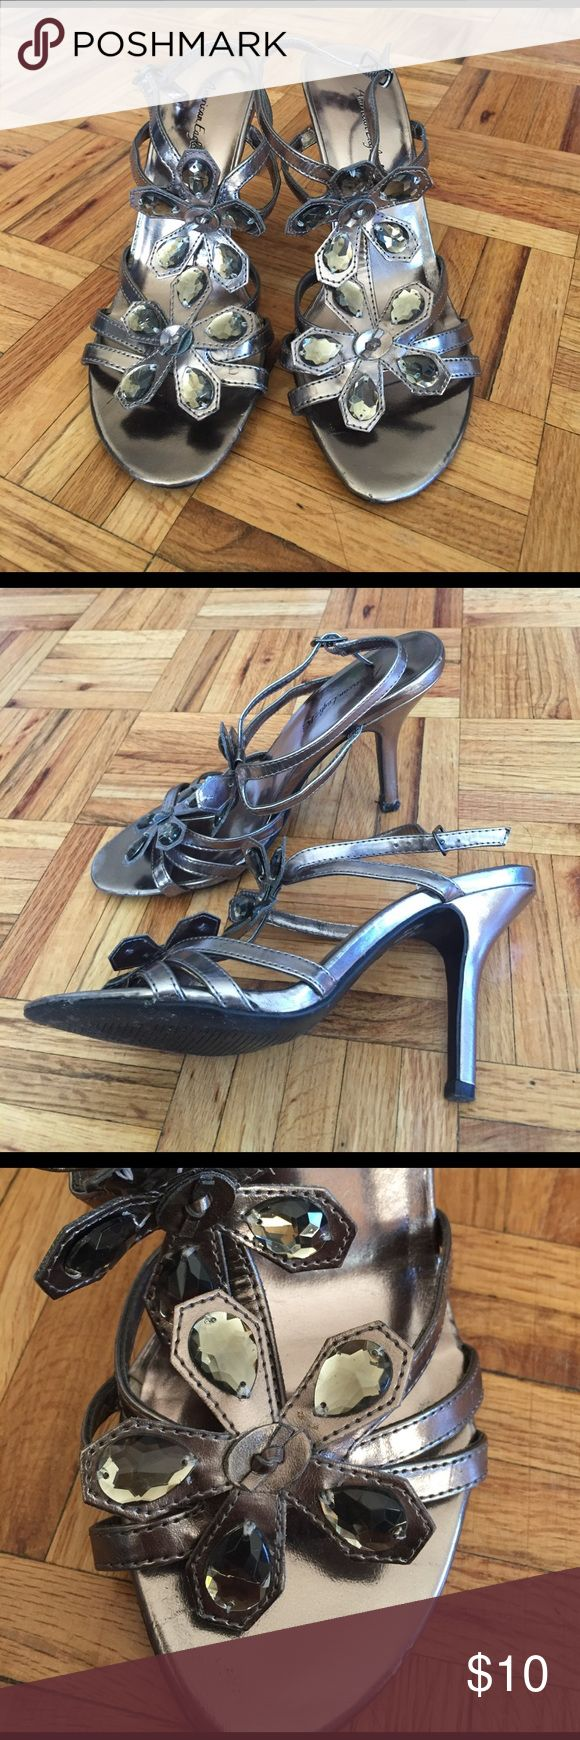 """Strappy heels size 7 Strappy 3.5"""" heels size 7, all man made materials. Worn a few times, but in excellent condition. Great for a night out! American Eagle by Payless Shoes Heels"""